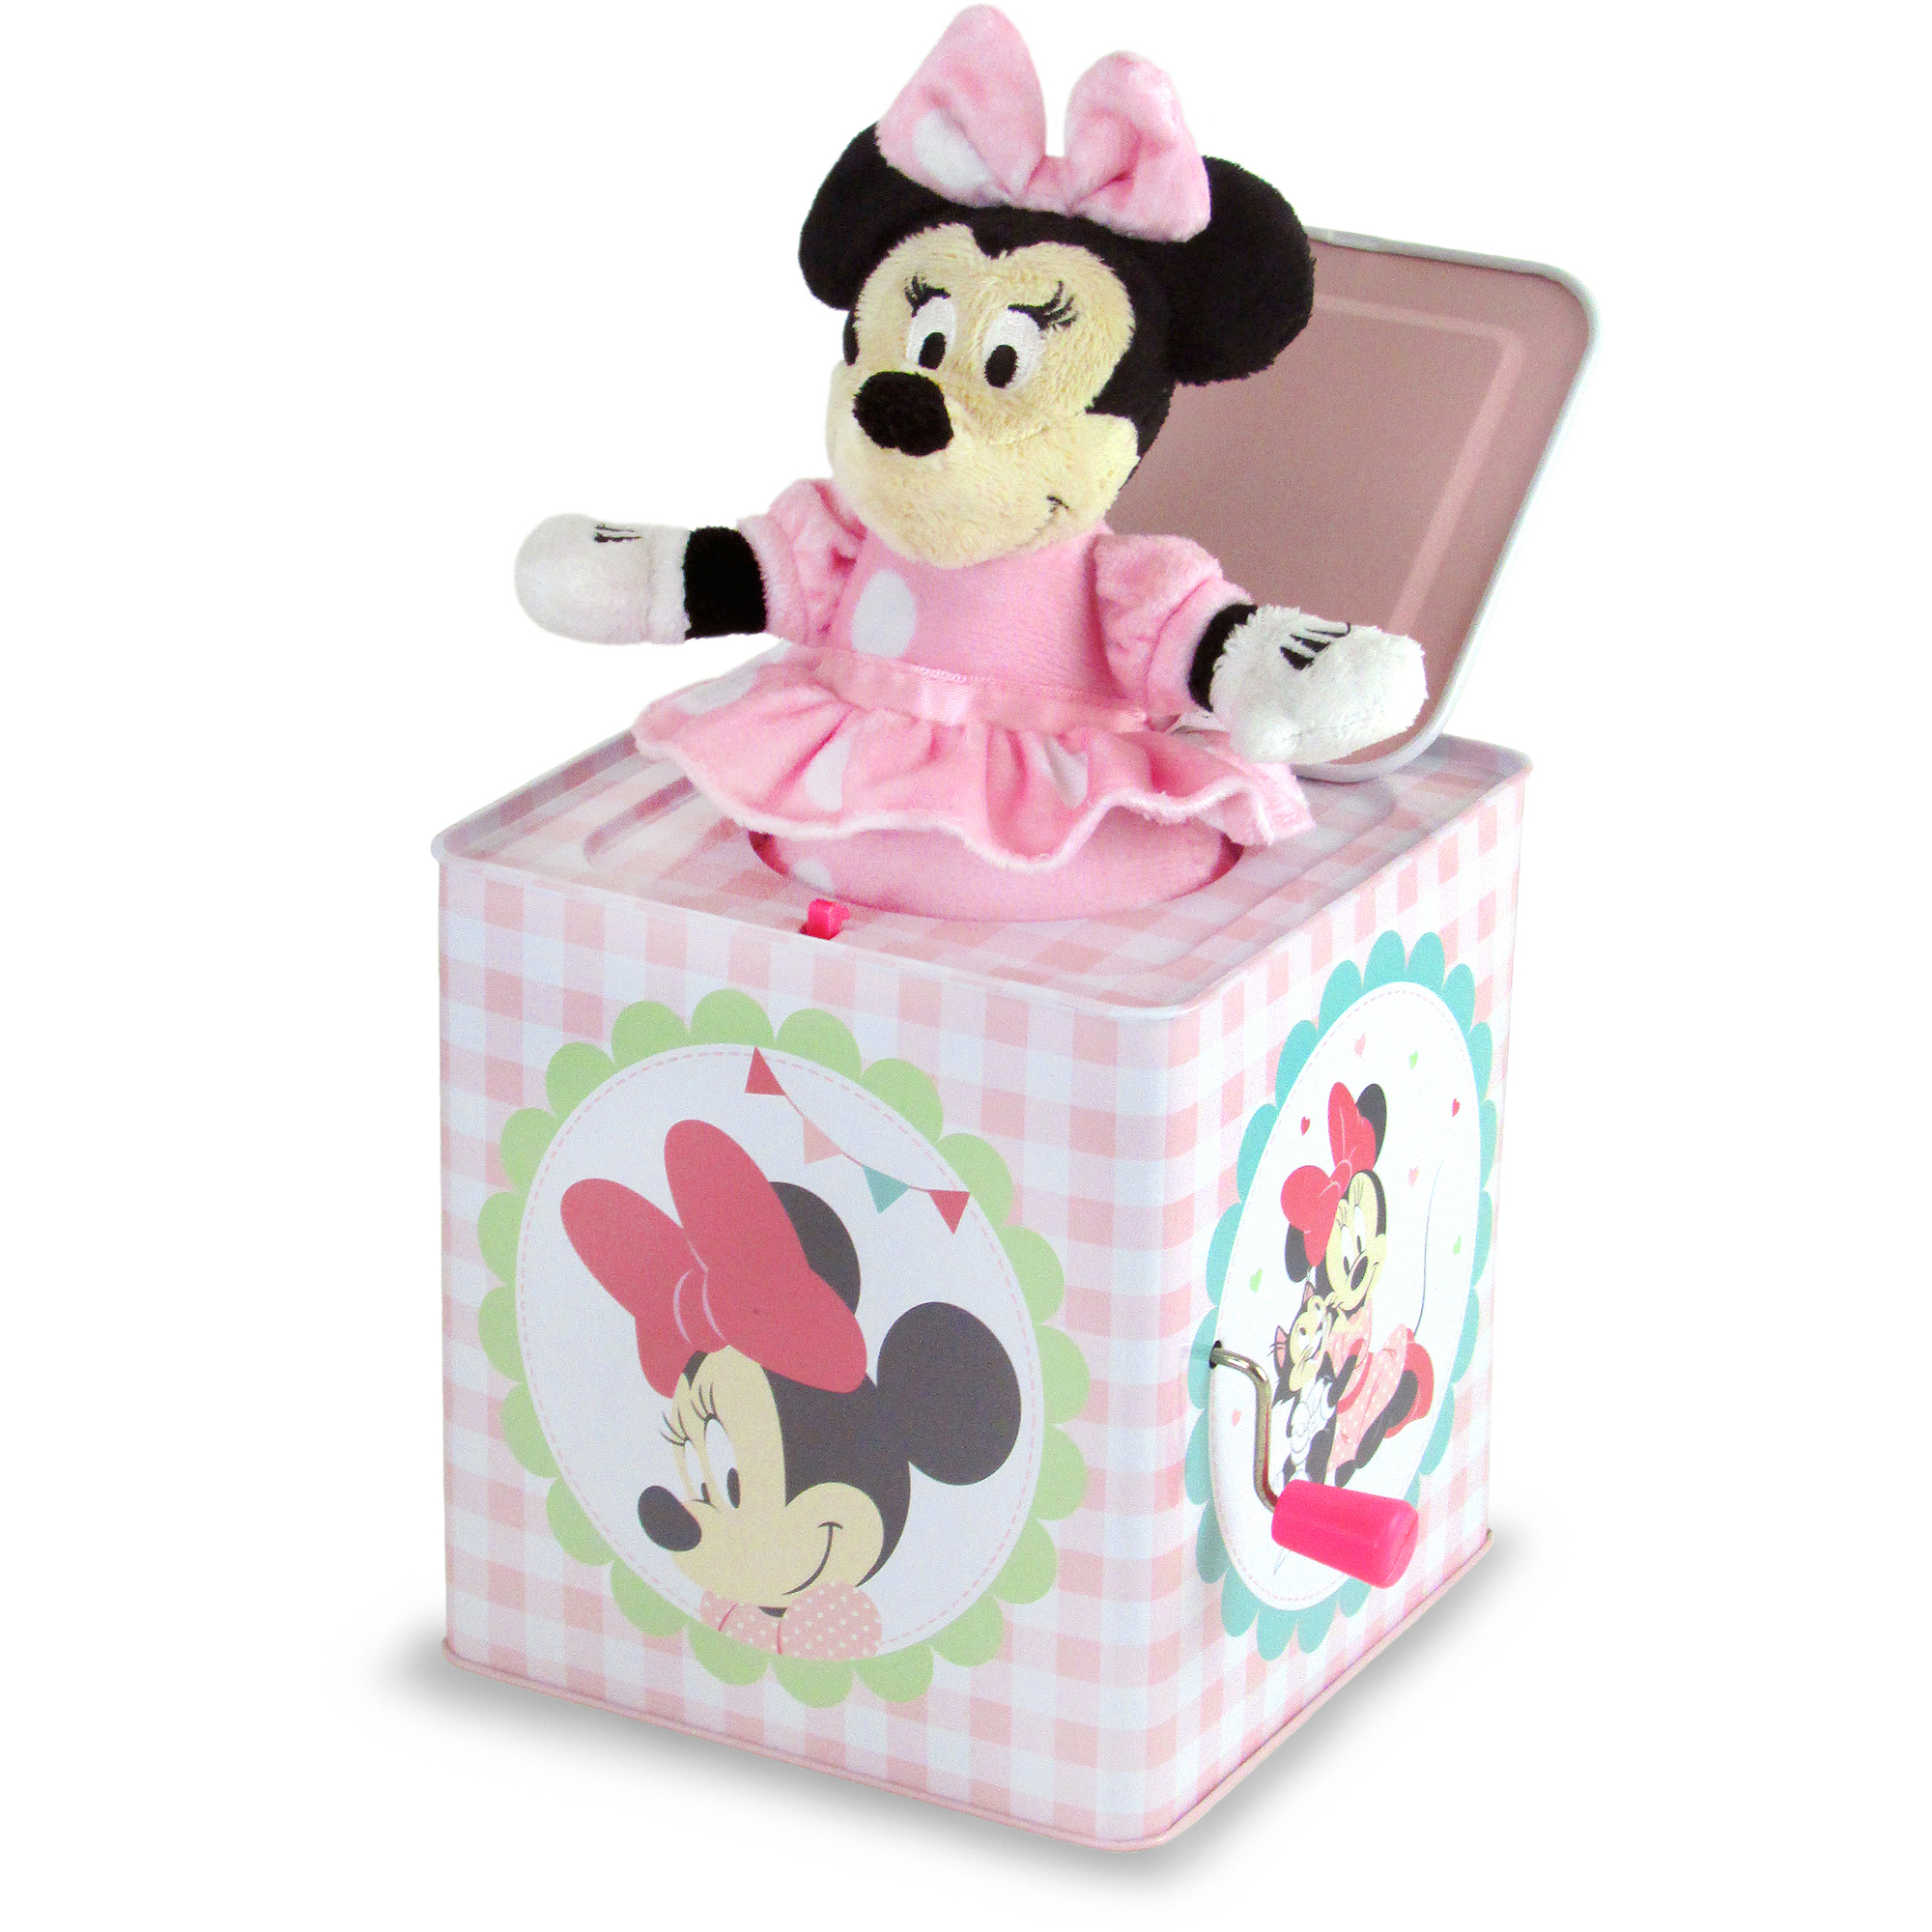 Kids Preferred Minnie Mouse Jack-in-the-Box